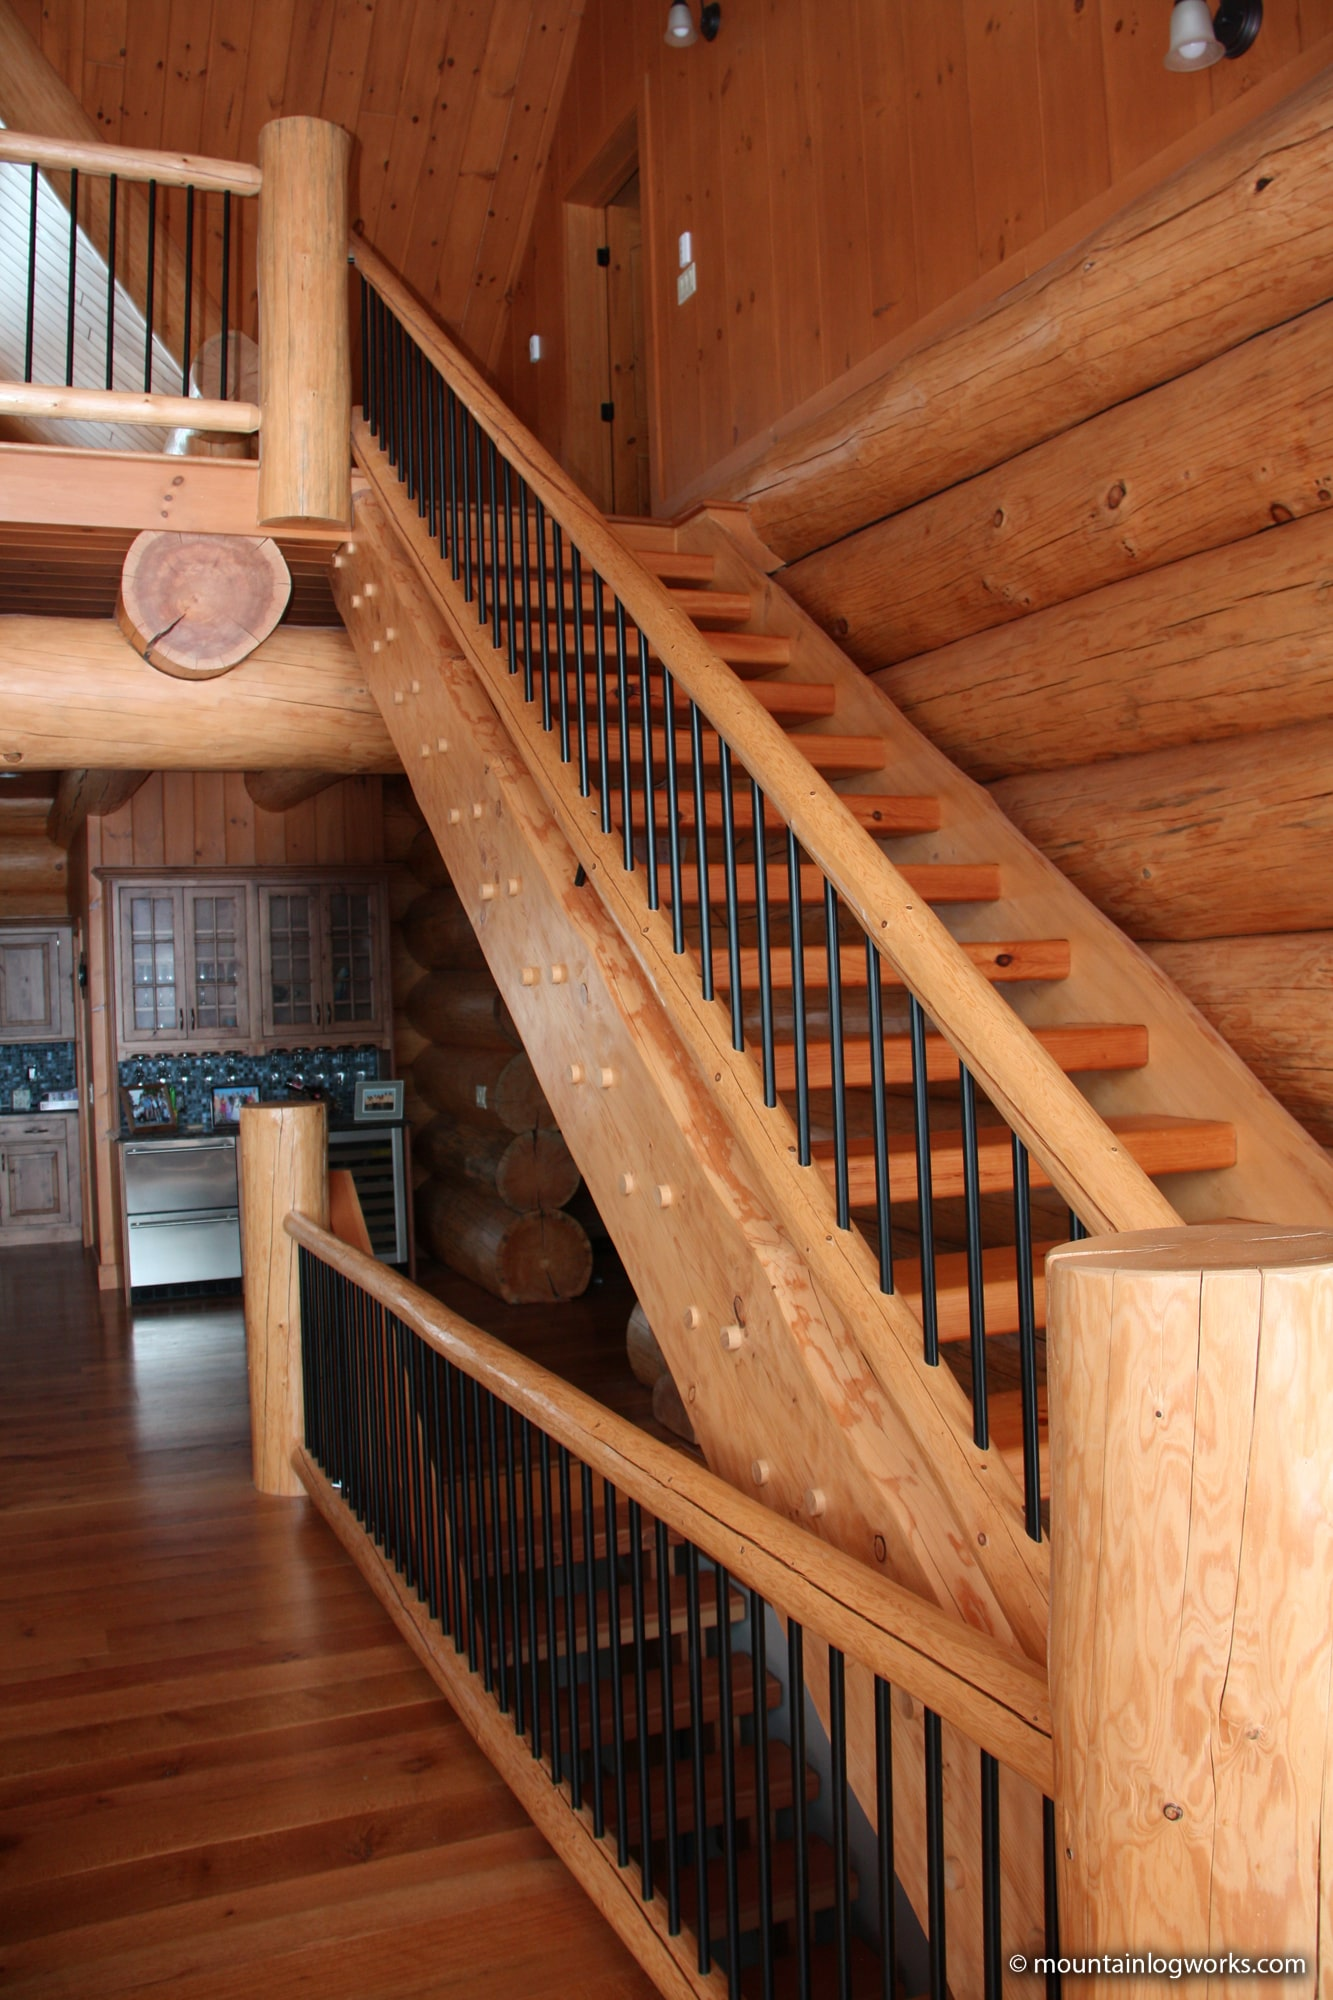 Stairs to log cabin loft